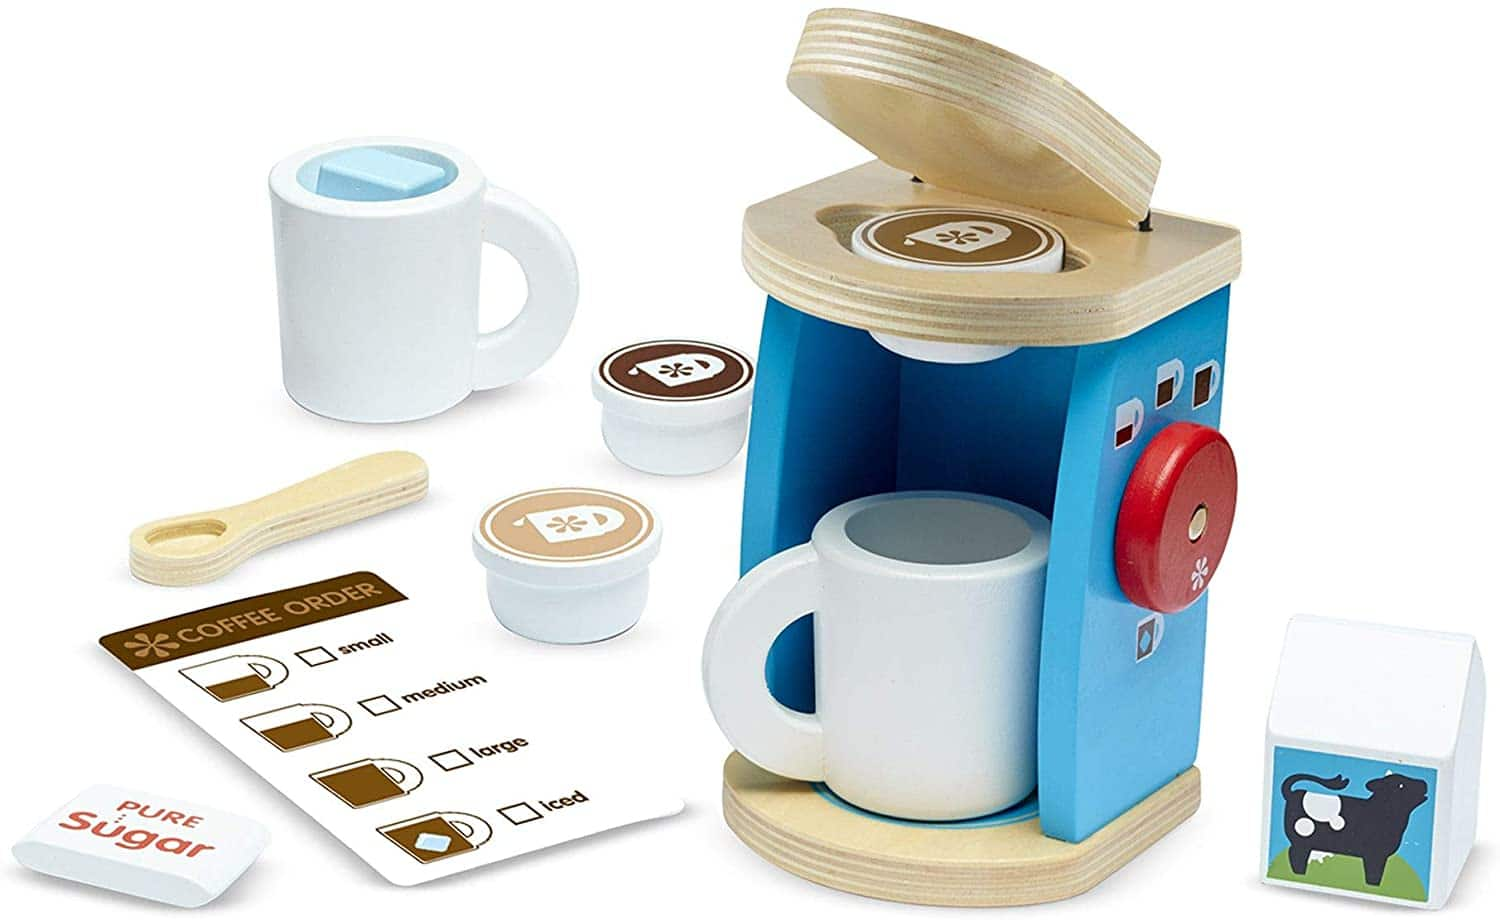 11 pce. Melissa & Doug Brew and Serve Wooden Coffee Maker Set $12.91 at Amazon